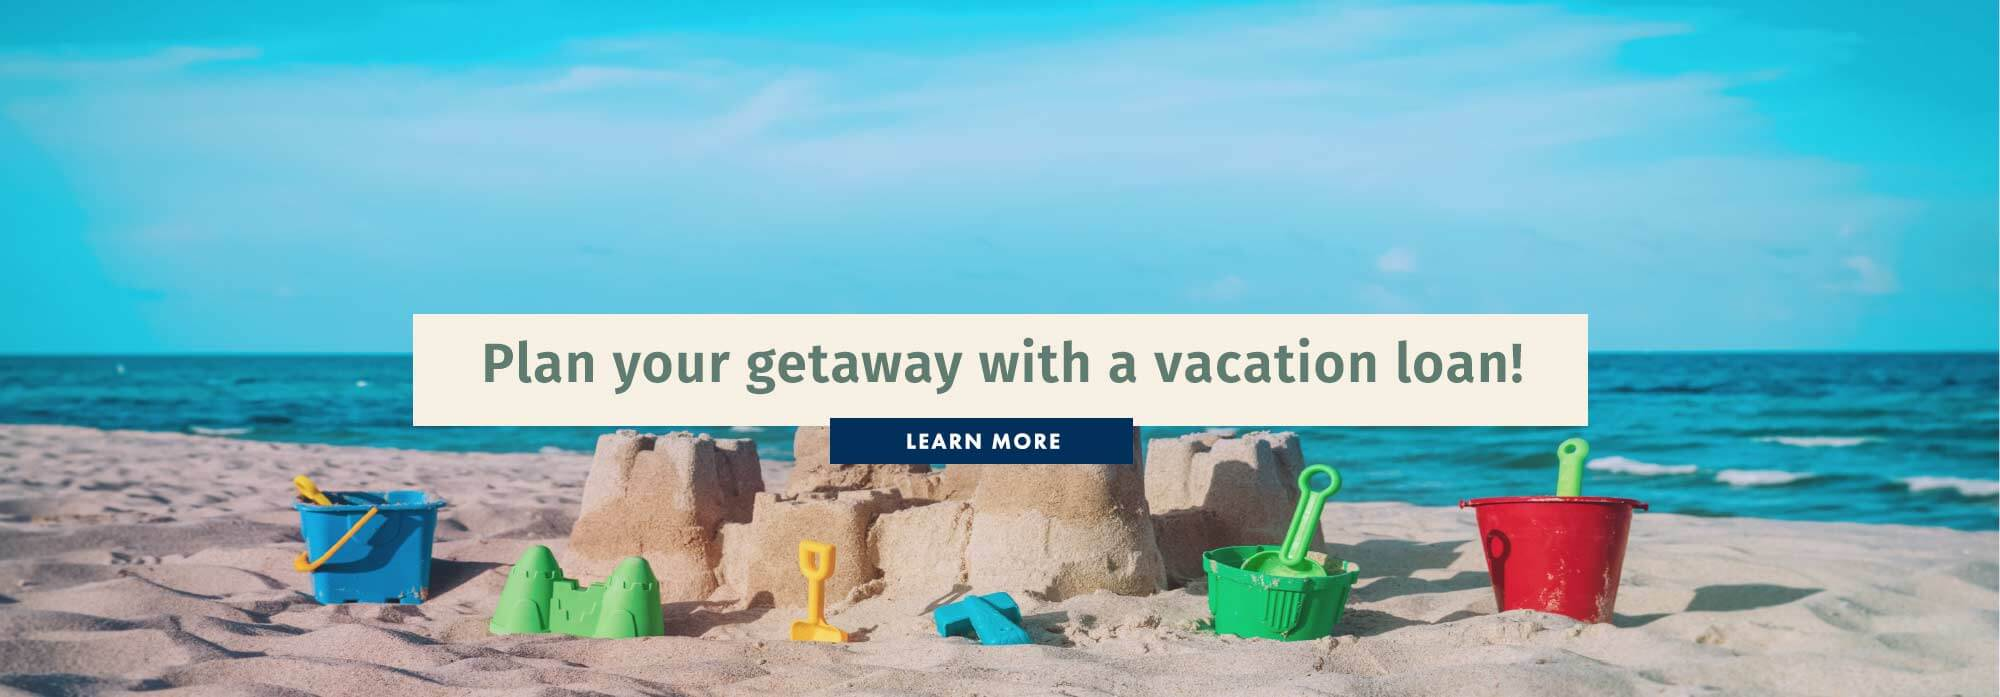 Personal Loans. Plan your getaway with a vacation loan!